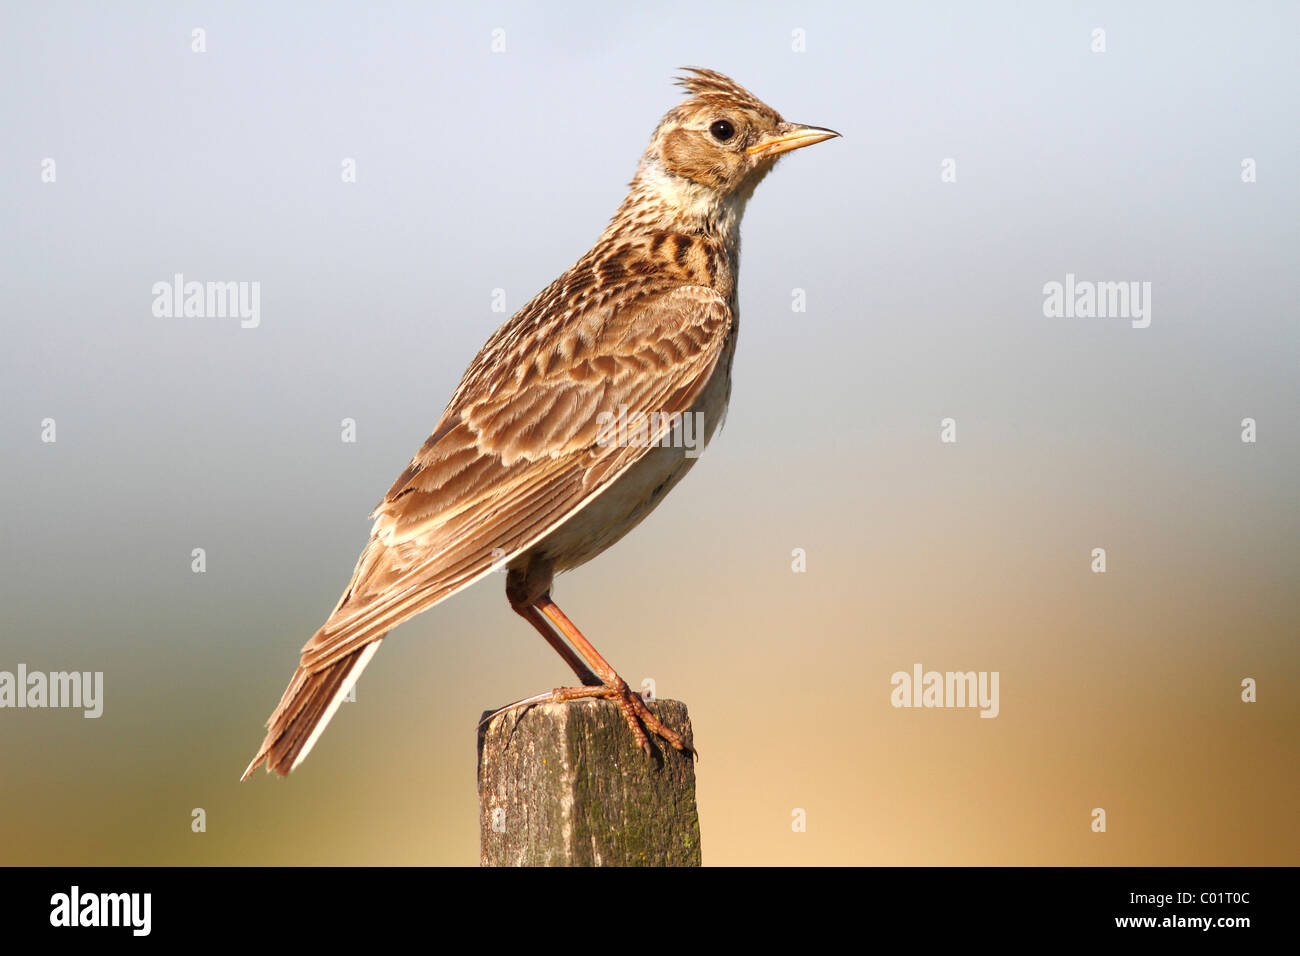 Skylark (Alauda arvensis) sitting on a fence post - Stock Image